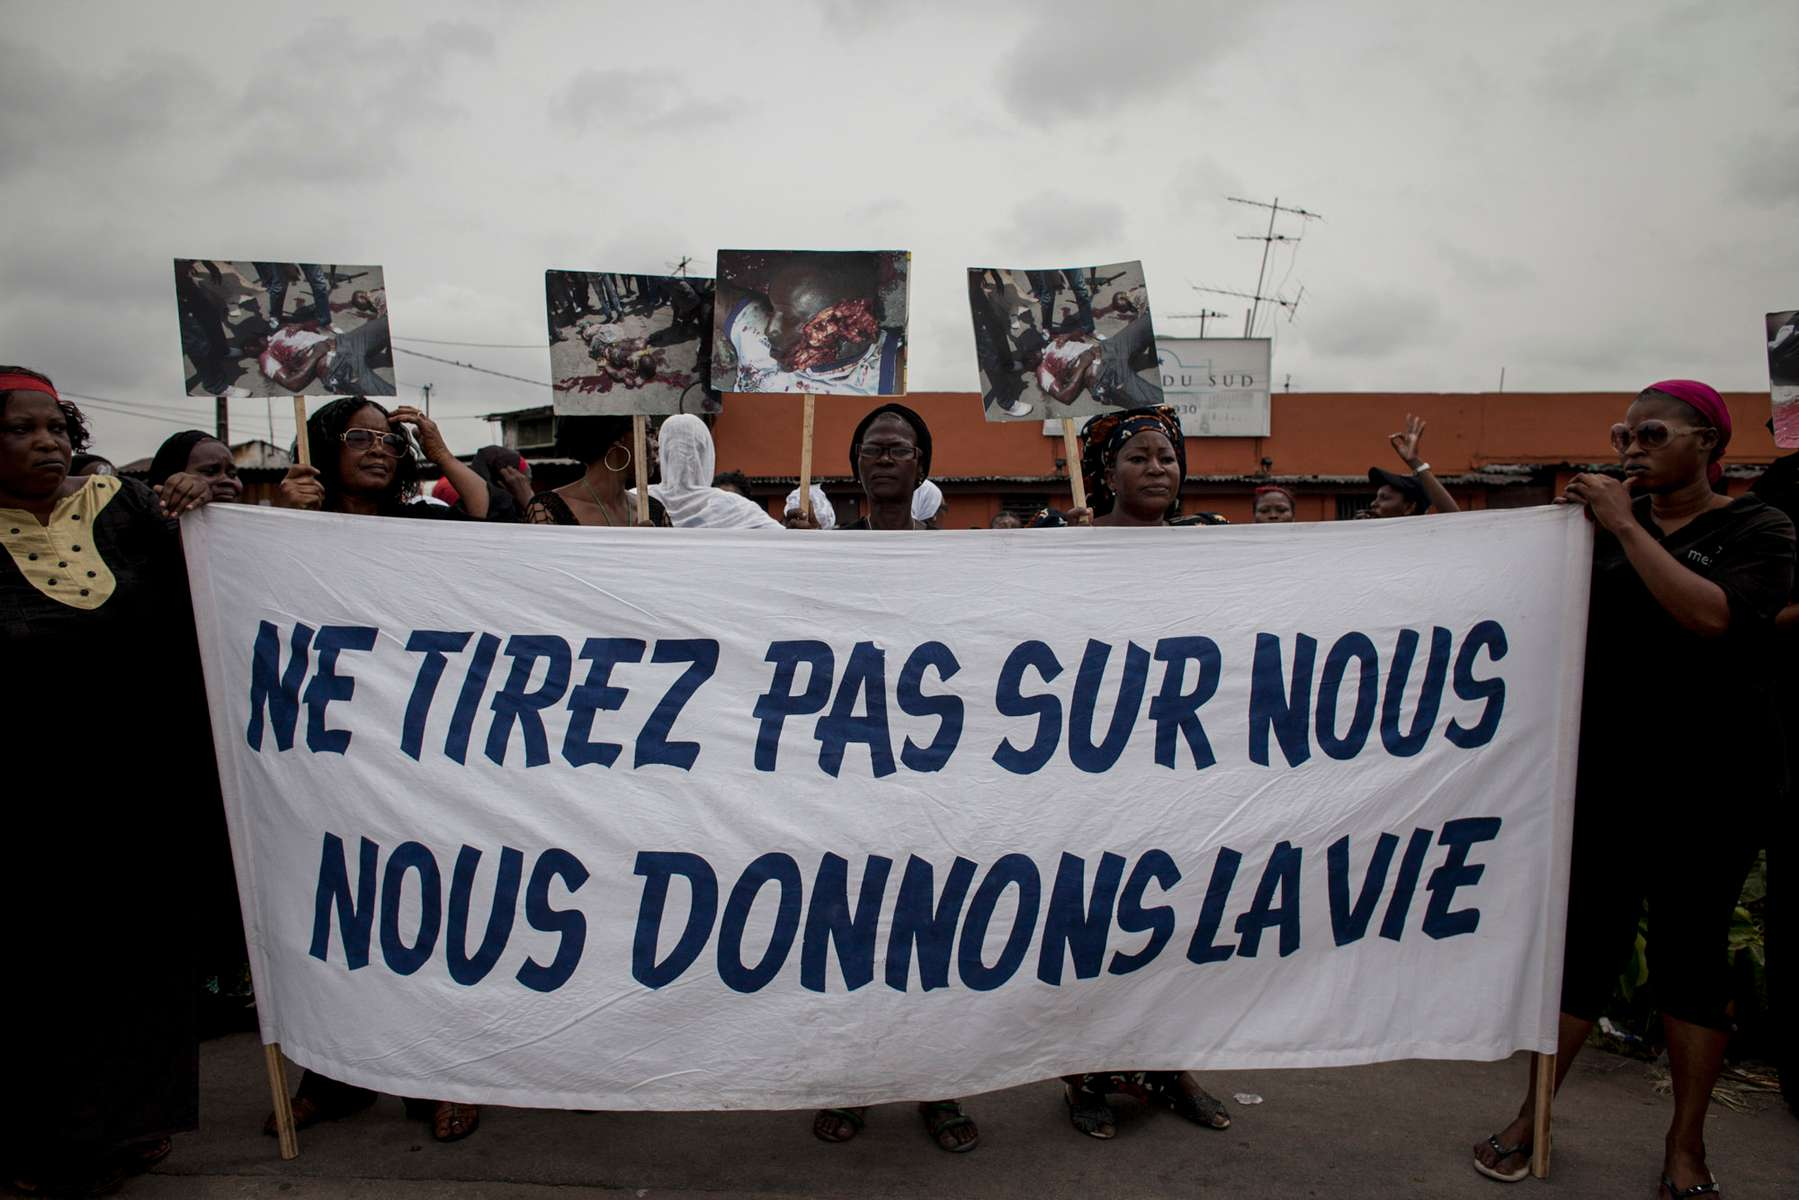 Women march through the streets mourning the deaths of the victims of the political violence, carrying a sign translating to {quote}Do not shoot us. We give life{quote} the morning of Tuesday, March 8, 2011 in Treichville, a suburb of Abidjan, Ivory Coast. This afternoon in Treichville, after finishing prayers (both Christian and Muslim) the marching women encountered the {quote}Compagnies Republicaines de SecuritÈ{quote} (CRS), special riot police loyal to Laurent Gbagbo. Its reported that the neighborhood youth guard stood in a line between the women and the CRS to protect the women when the CRS opened fire. At least four were killed including one woman and unknown number were injured.